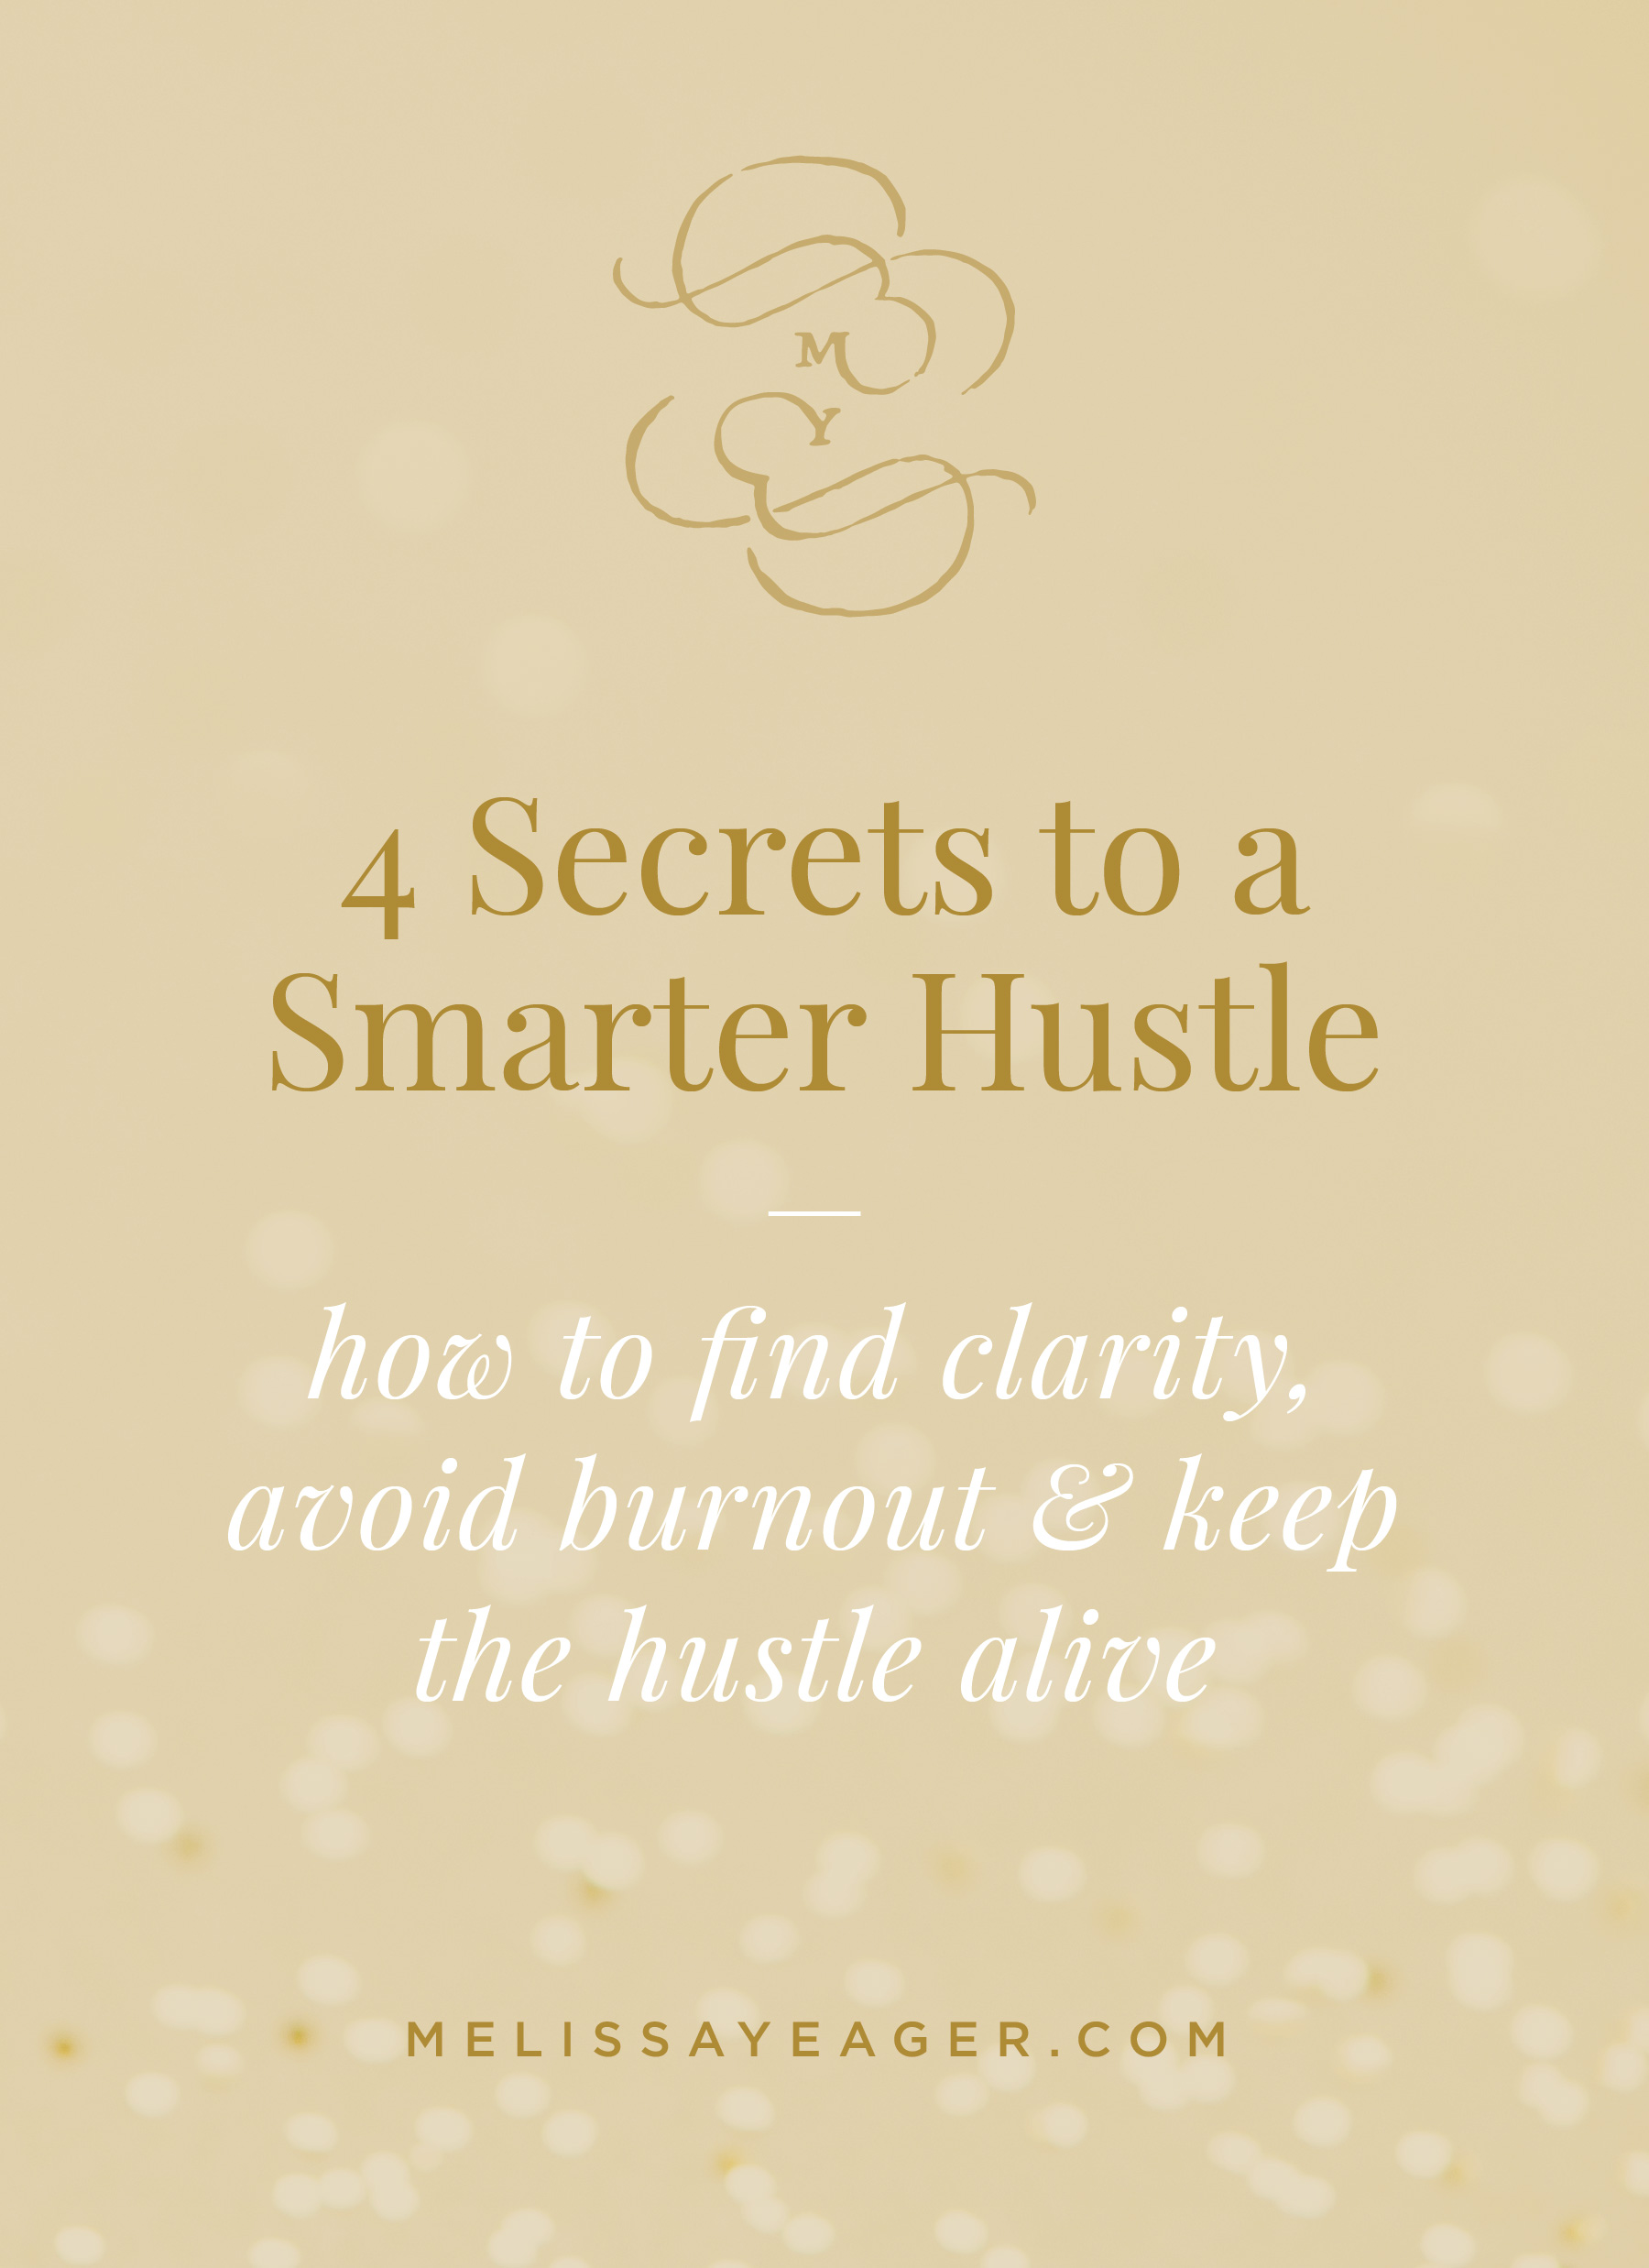 4 Secrets to a Smarter Hustle:how to find clarity, avoid burnout & keep the hustle alive